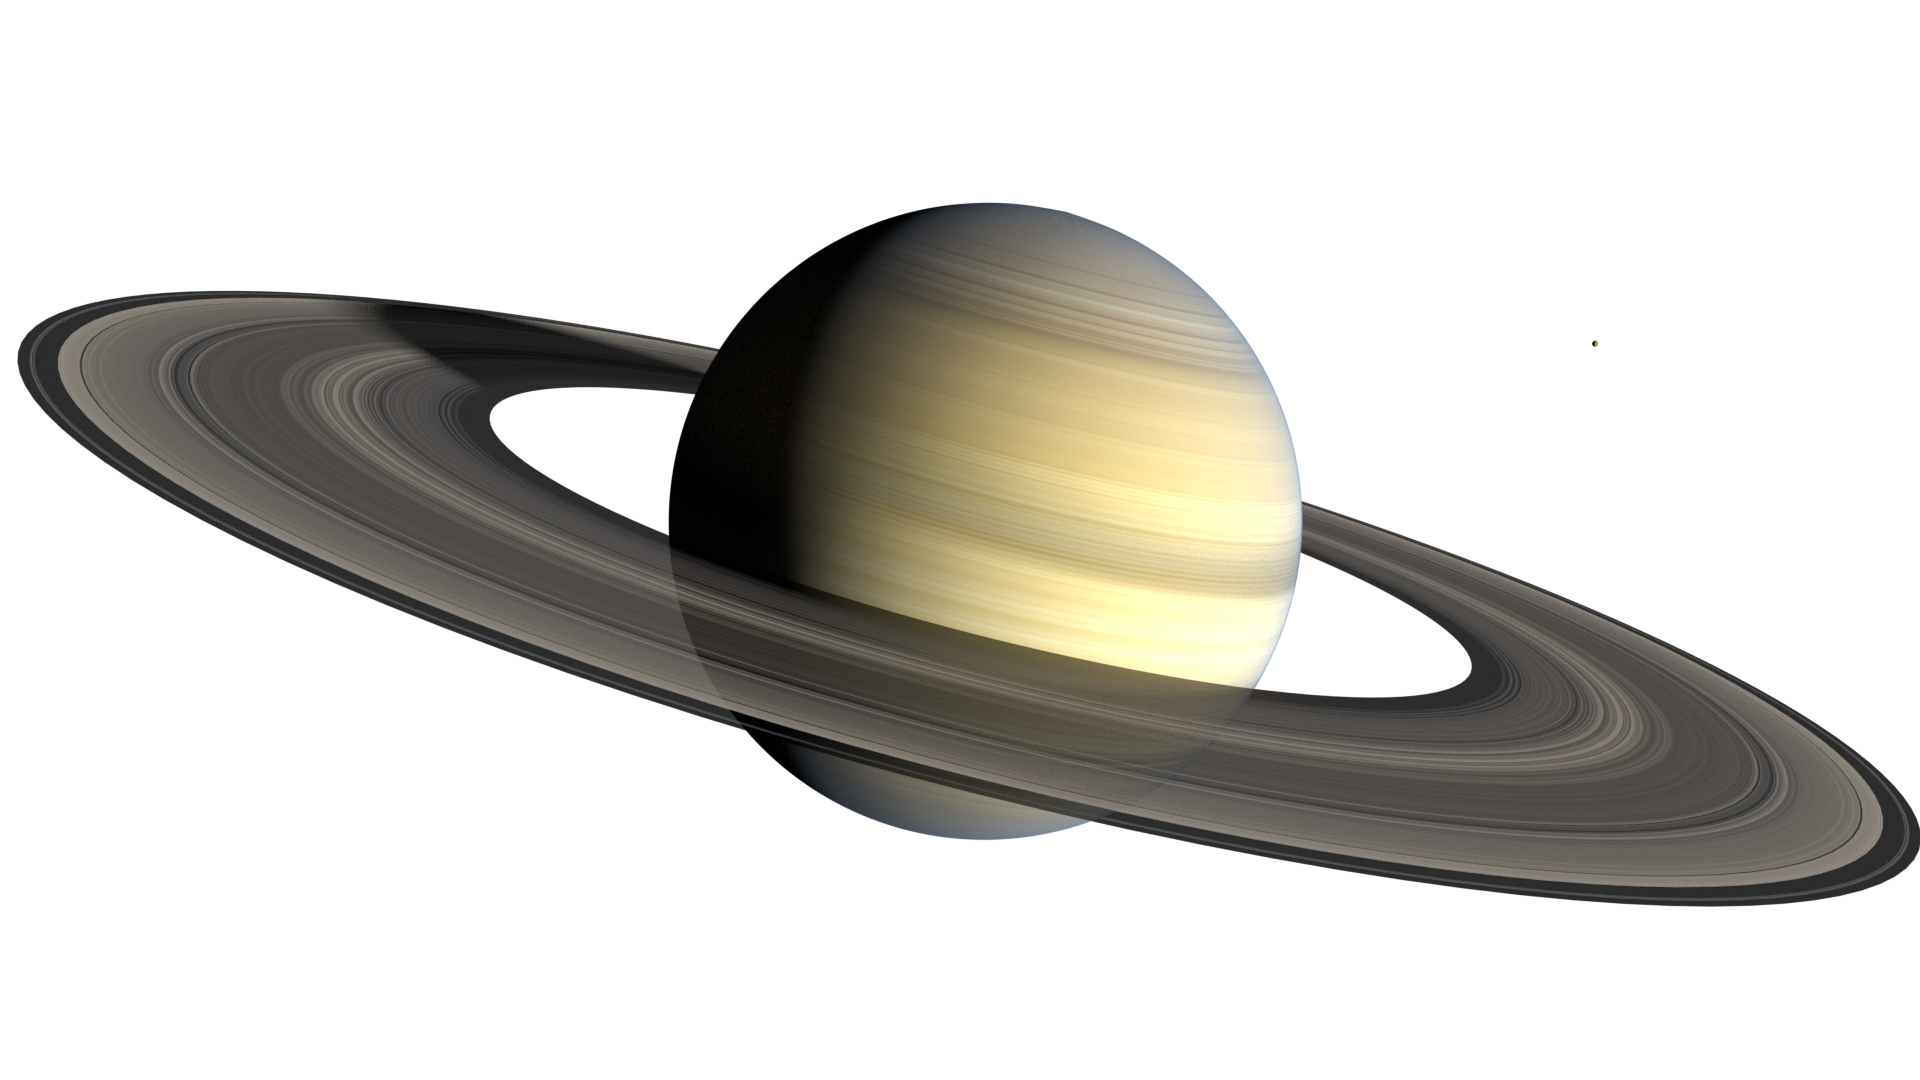 Saturn transparent png. A blender model of